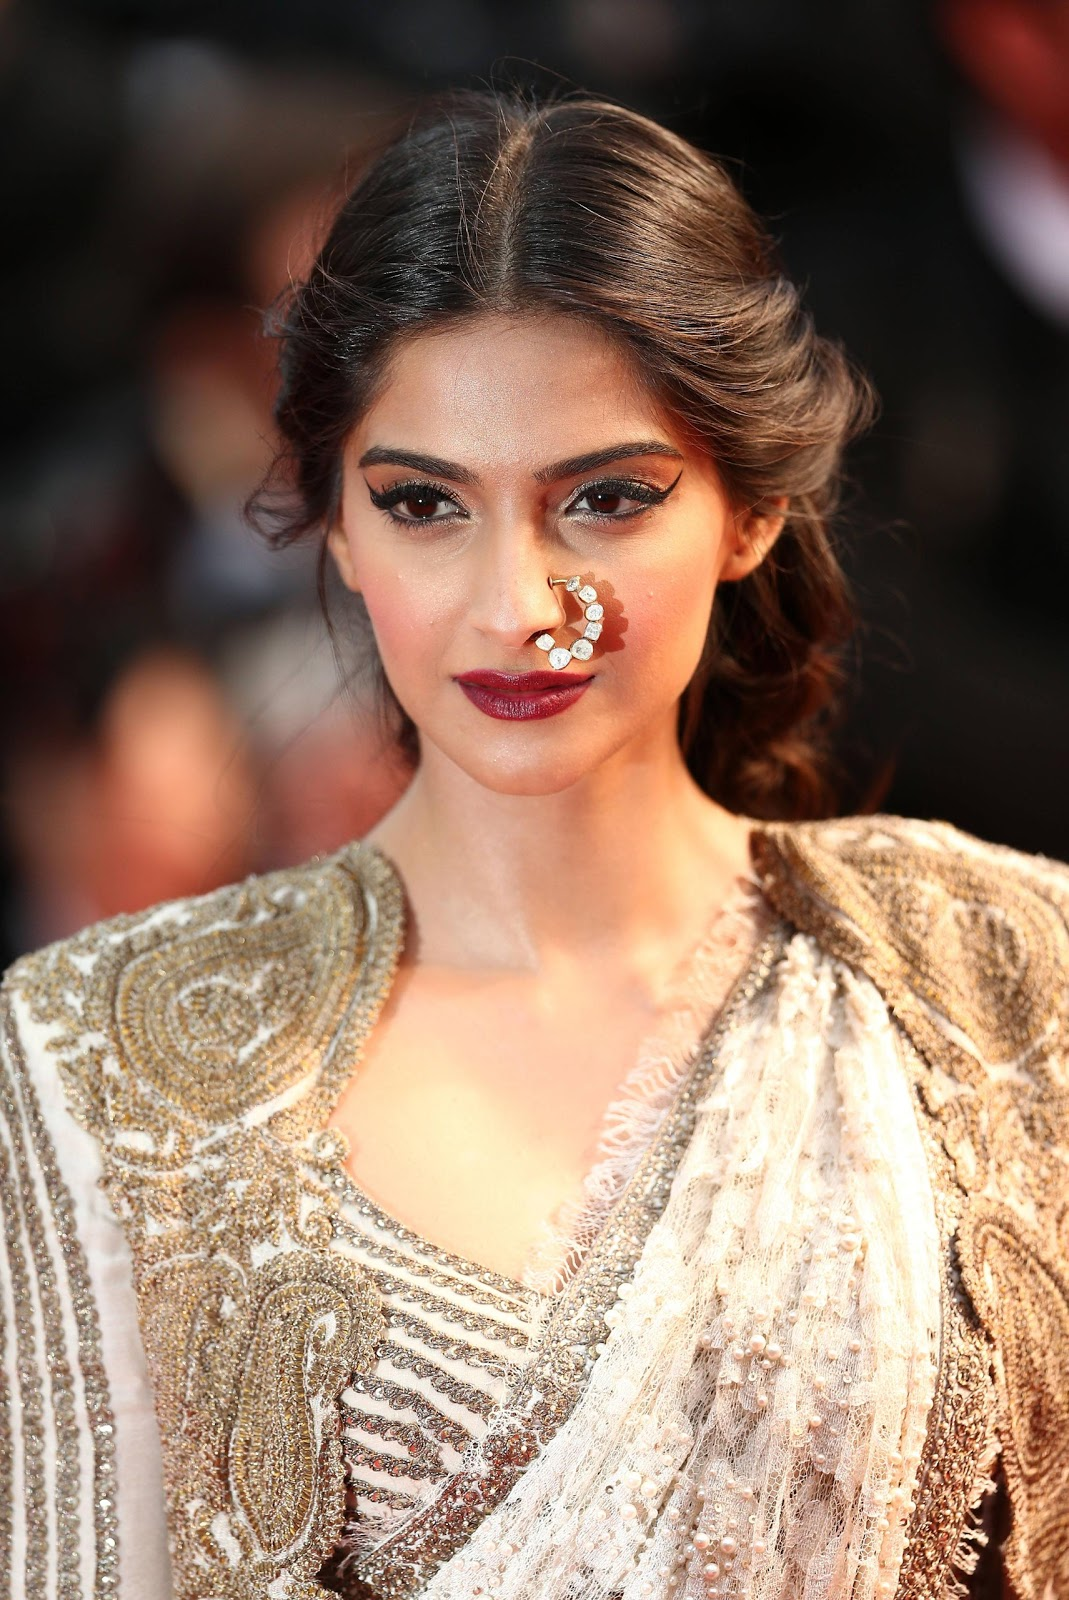 Prem Ratan Dhan Payo Actress Sonam Kapoor 100 Hd Hot Photos